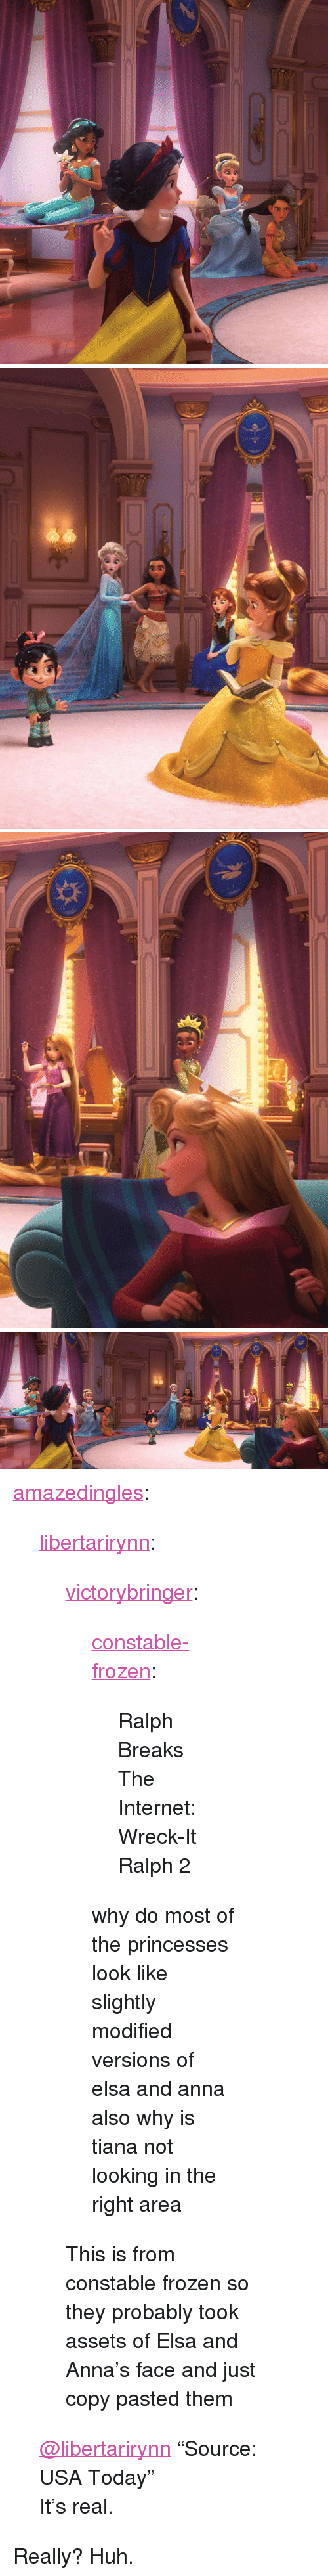 """Anna, Elsa, and Frozen: <p><a href=""""http://amazedingles.tumblr.com/post/174438587968/libertarirynn-victorybringer"""" class=""""tumblr_blog"""">amazedingles</a>:</p>  <blockquote><p><a href=""""https://libertarirynn.tumblr.com/post/174425798269/victorybringer-constable-frozen-ralph-breaks"""" class=""""tumblr_blog"""">libertarirynn</a>:</p>  <blockquote><p><a href=""""http://victorybringer.tumblr.com/post/174425396825/constable-frozen-ralph-breaks-the-internet"""" class=""""tumblr_blog"""">victorybringer</a>:</p>  <blockquote><p><a href=""""https://constable-frozen.tumblr.com/post/174410635303/ralph-breaks-the-internet-wreck-it-ralph-2"""" class=""""tumblr_blog"""">constable-frozen</a>:</p><blockquote><p>Ralph Breaks The Internet: Wreck-It Ralph 2</p></blockquote> <p style="""""""">why do most of the princesses look like slightly modified versions of elsa and anna</p><p>also why is tiana not looking in the right area</p></blockquote>  <p>This is from constable frozen so they probably took assets of Elsa and Anna's face and just copy pasted them</p></blockquote>  <p><a class=""""tumblelog"""" href=""""https://tmblr.co/mZHrjydhp9oUbxMGBDJA8rw"""">@libertarirynn</a> """"Source: USA Today""""</p><p>It's real.</p></blockquote>  <p>Really? Huh.</p>"""